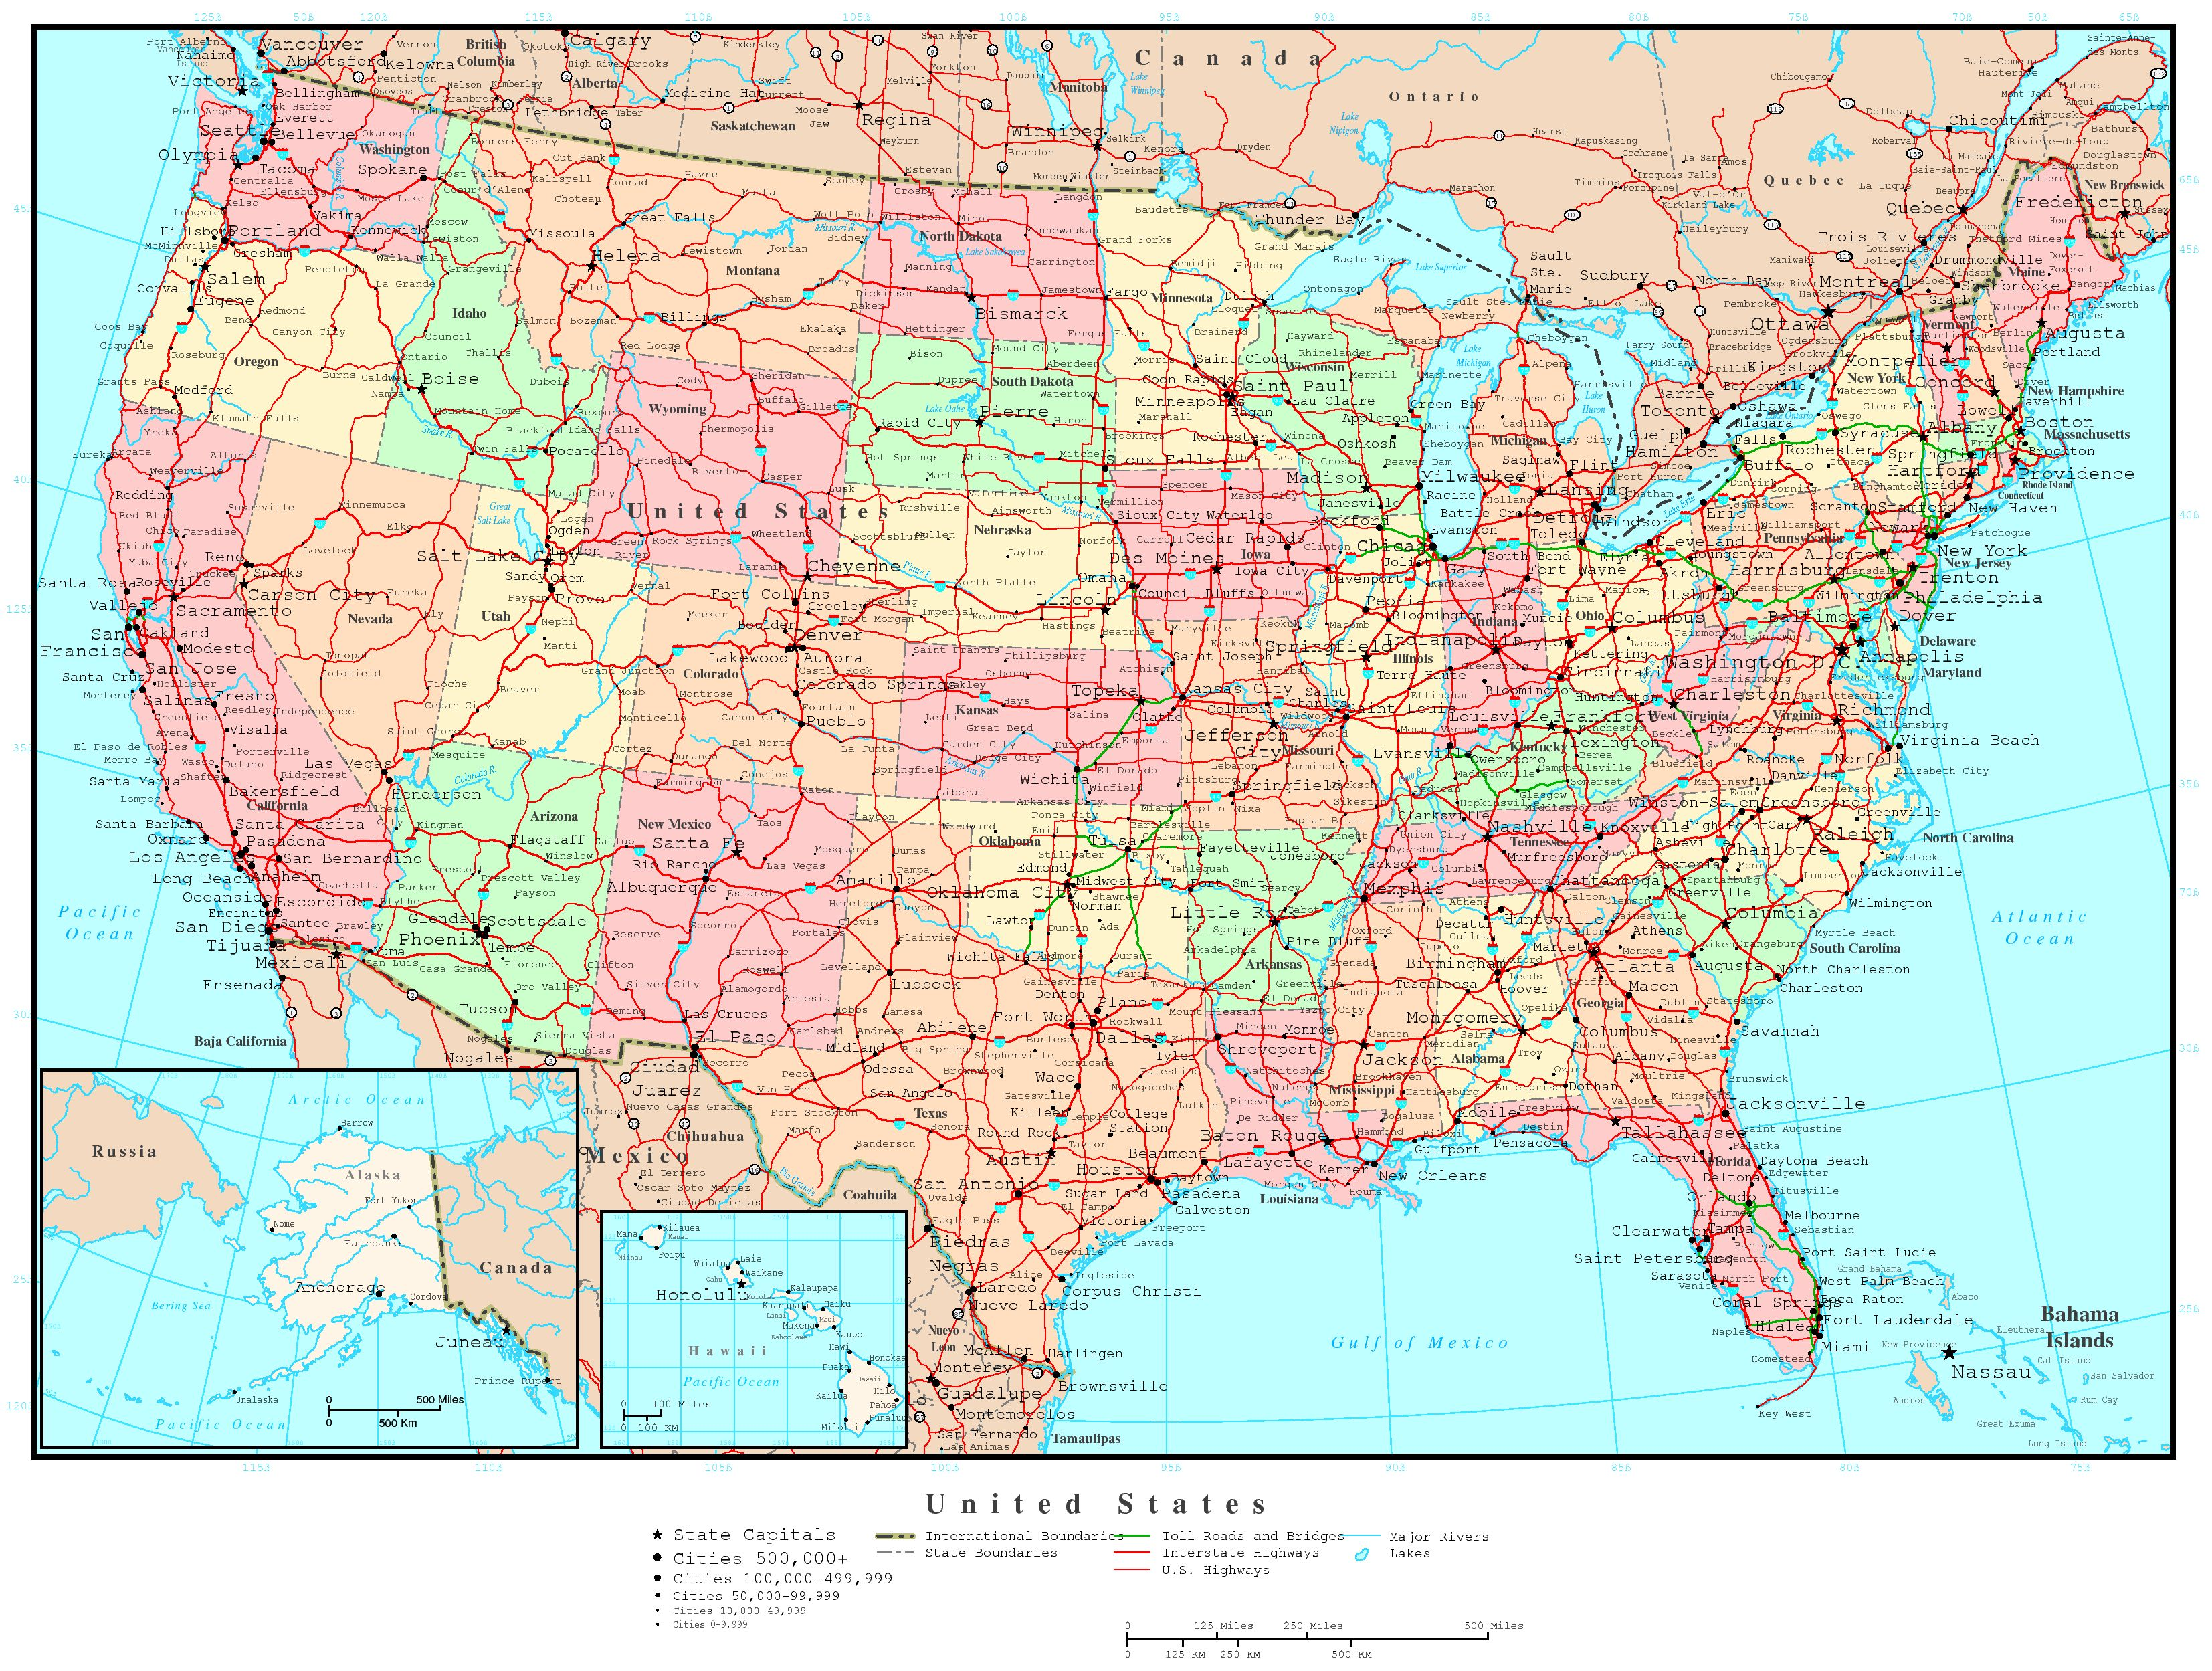 United States Political Map - A map of the united states of america